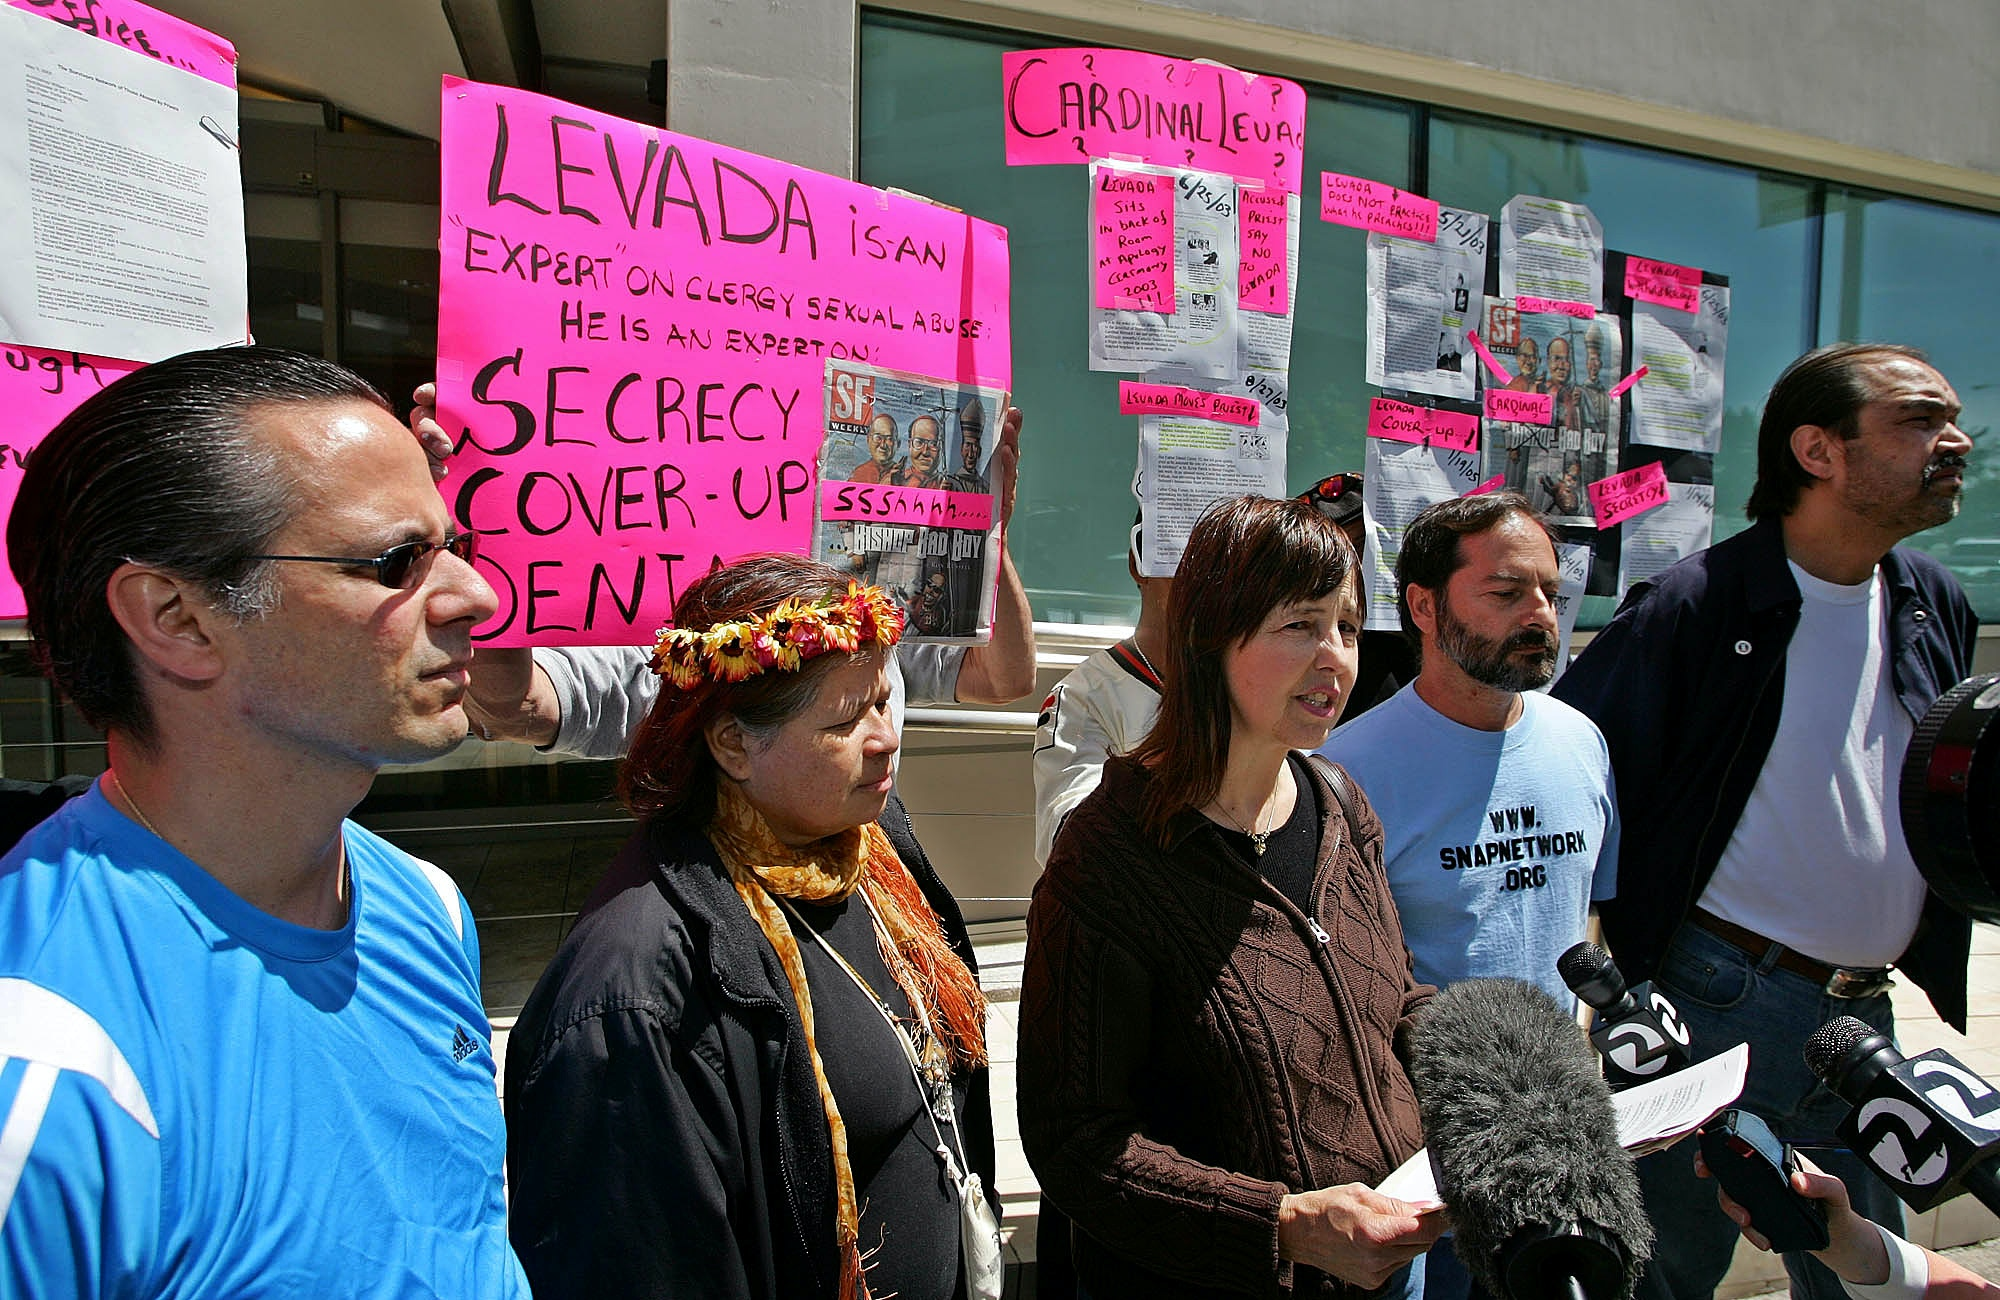 From left, Dominic Delucca, Sonia Todd, Terrie Light, Joe Piscitelli, and Wayne Presely, all claiming to be victims of clergy abuse, hold a demonstration against the naming of Archbishop William J. Levada as Prefect for the Congregation of the Doctrine of the Faith for the Cathlolic Church outside the Catholic Archdiocese in San Francisco, Friday May 13, 2005.  The protesters are part of a group called SNAP, The Survivors Network of Those Abused by Priests.(AP Photo/Eric Risberg)